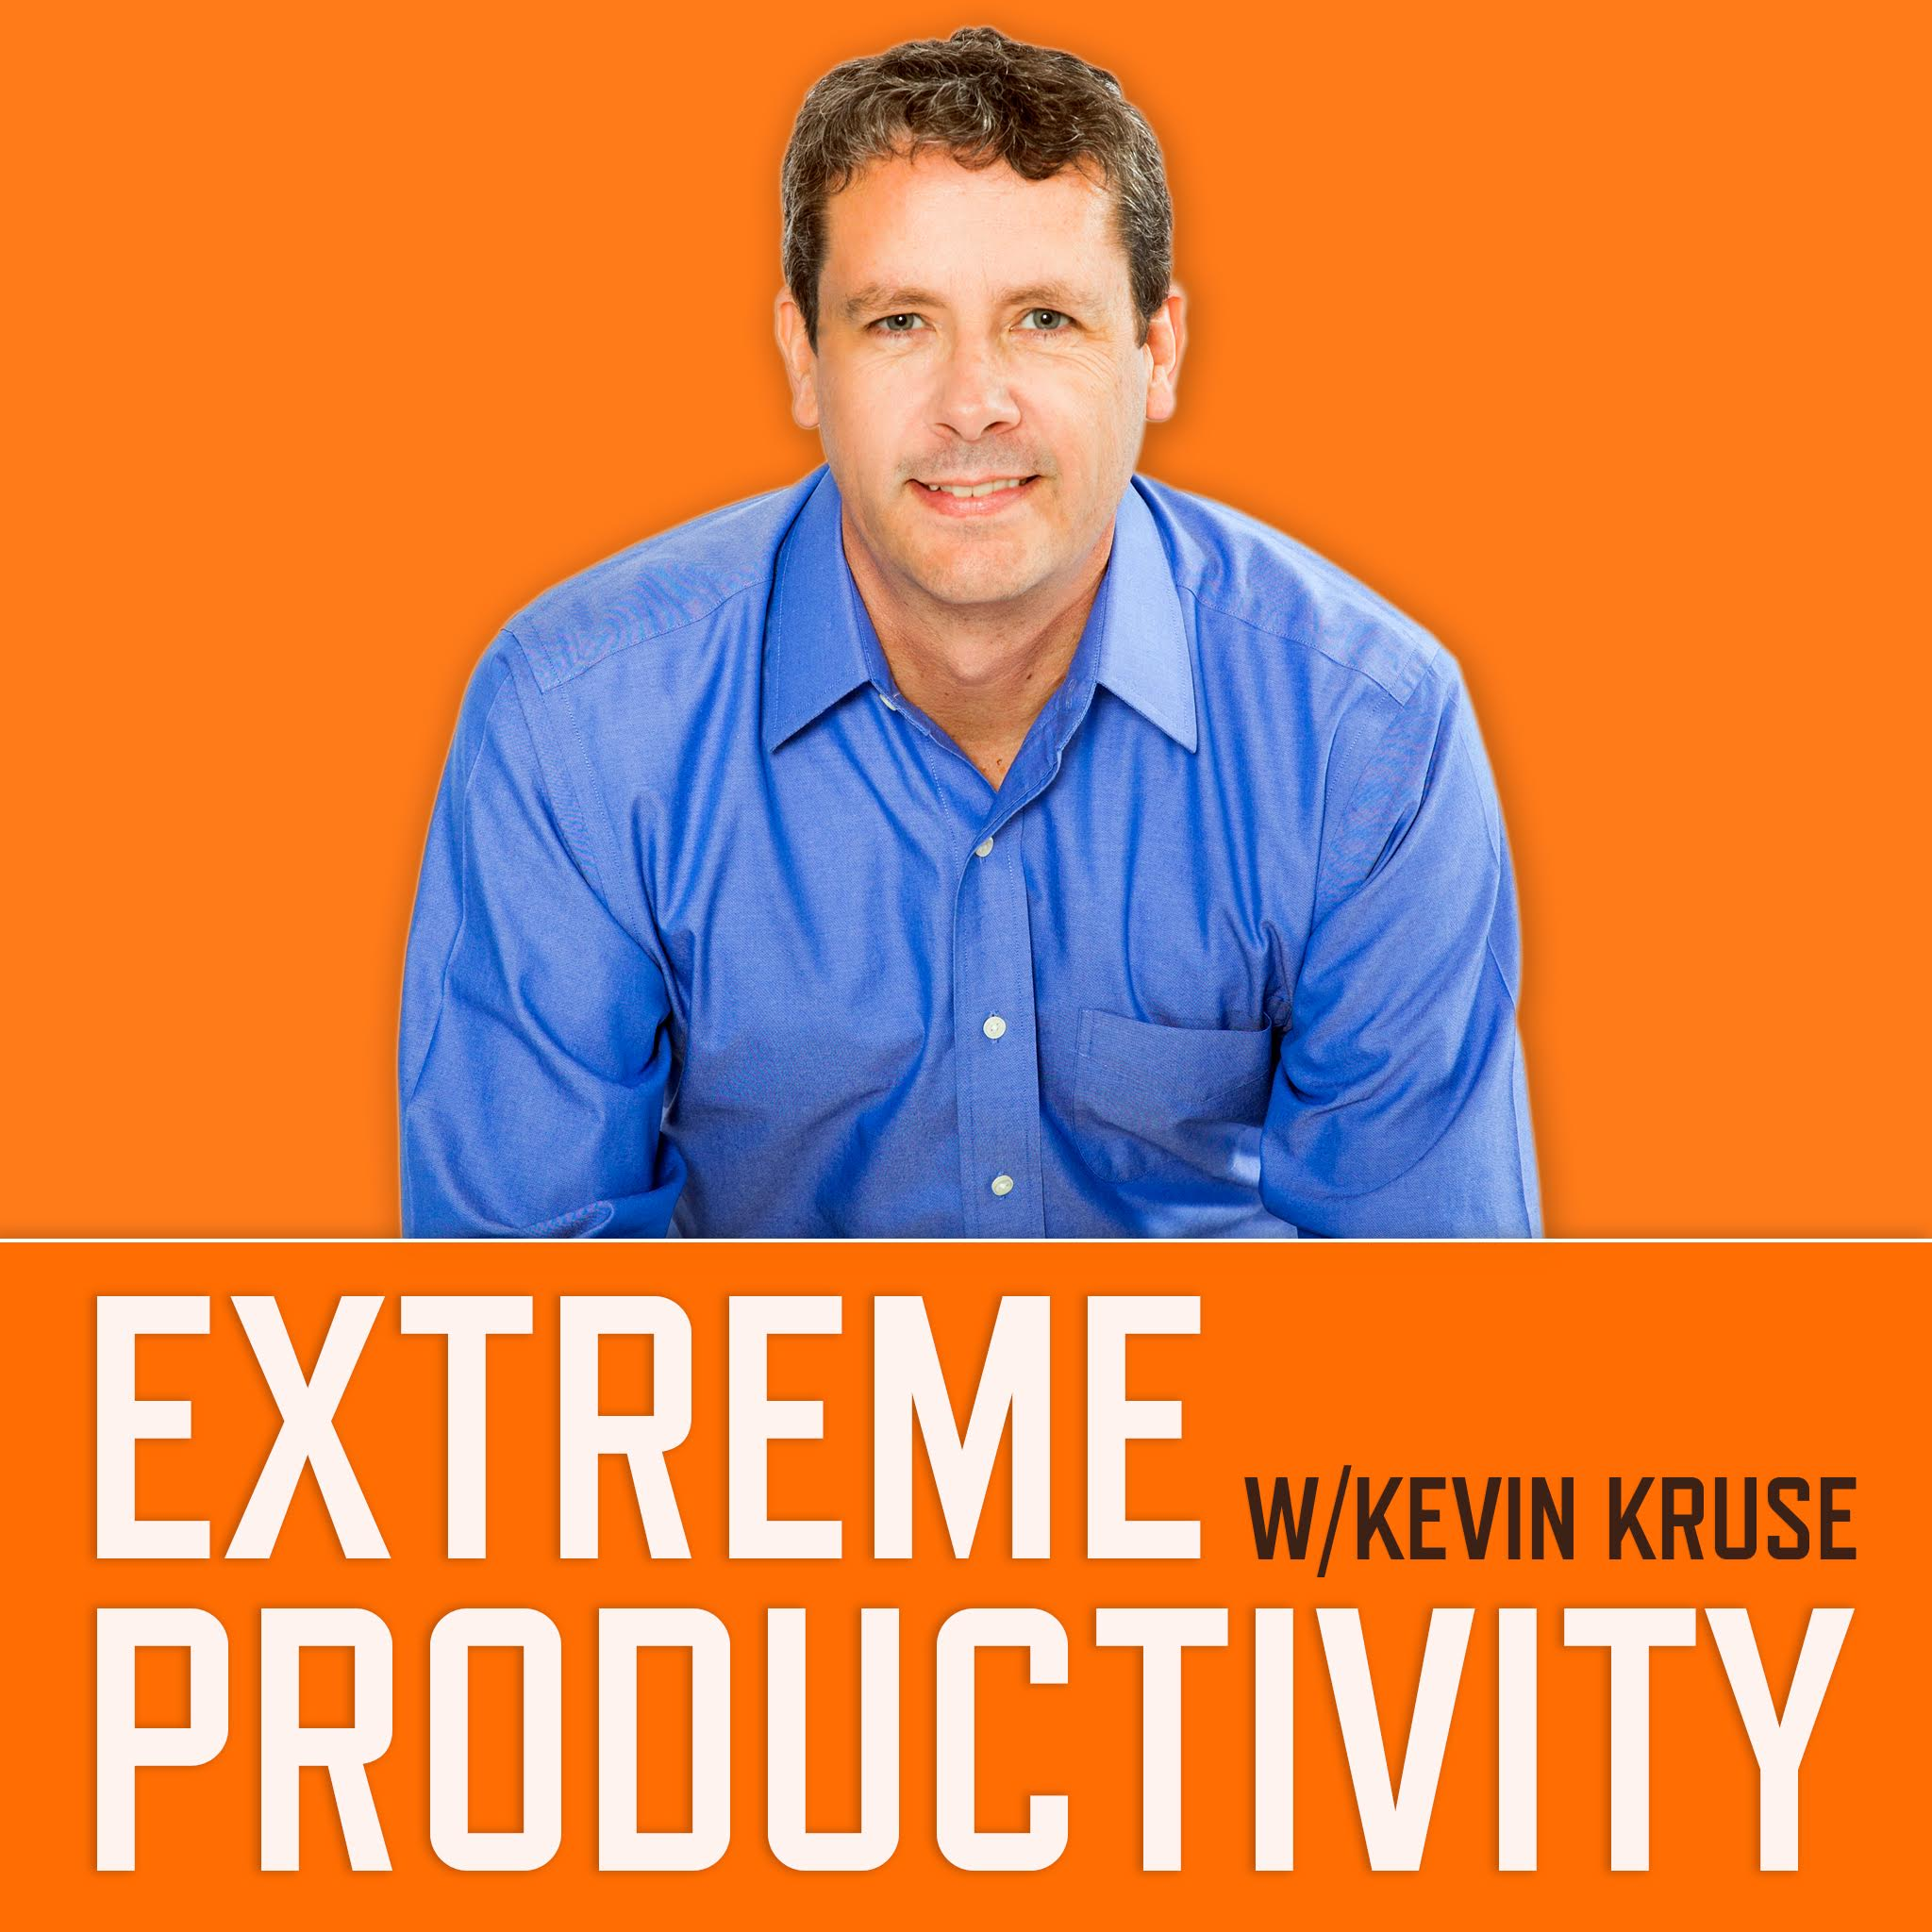 Artwork for podcast Extreme Productivity with Kevin Kruse